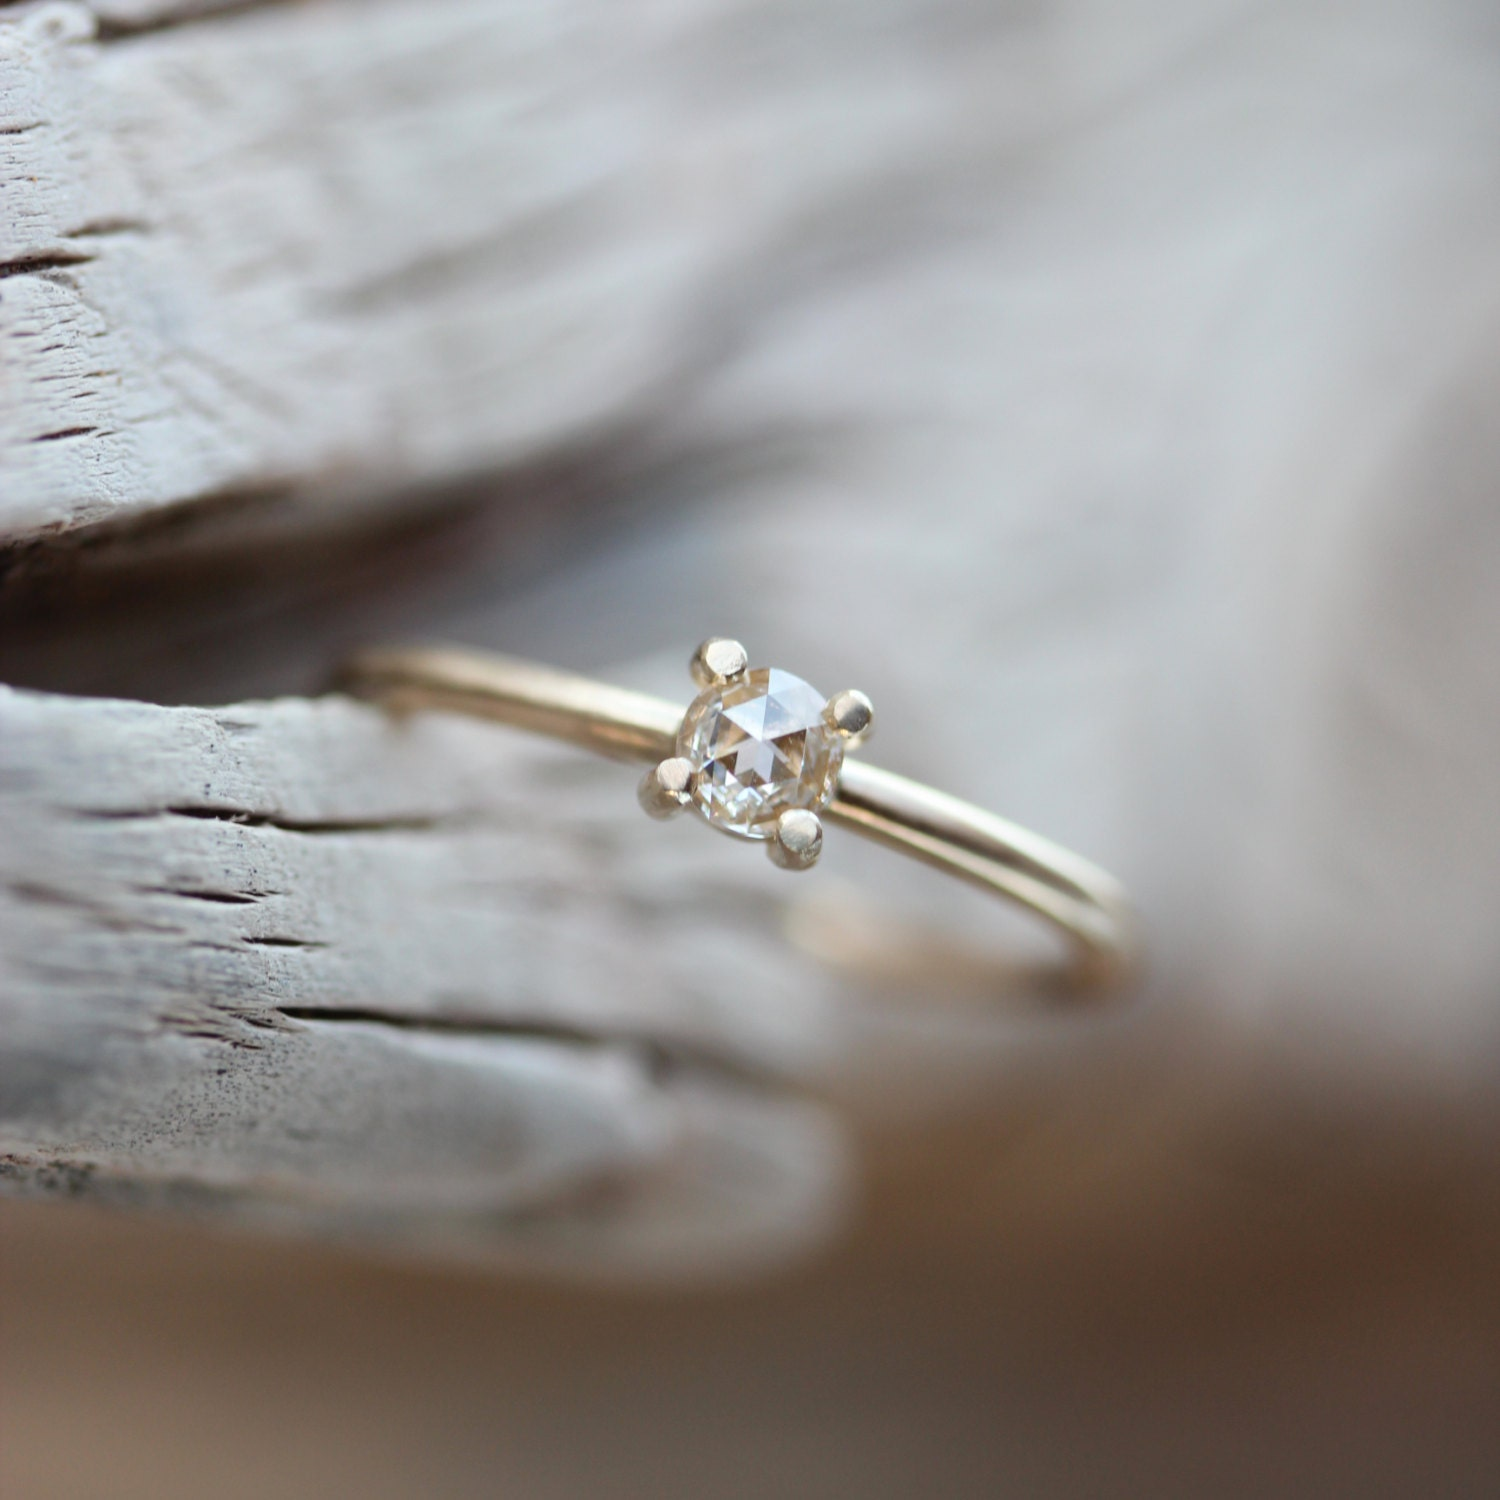 Delicate Rose Cut Diamond Engagement Ring 14k Yellow Gold Tiny